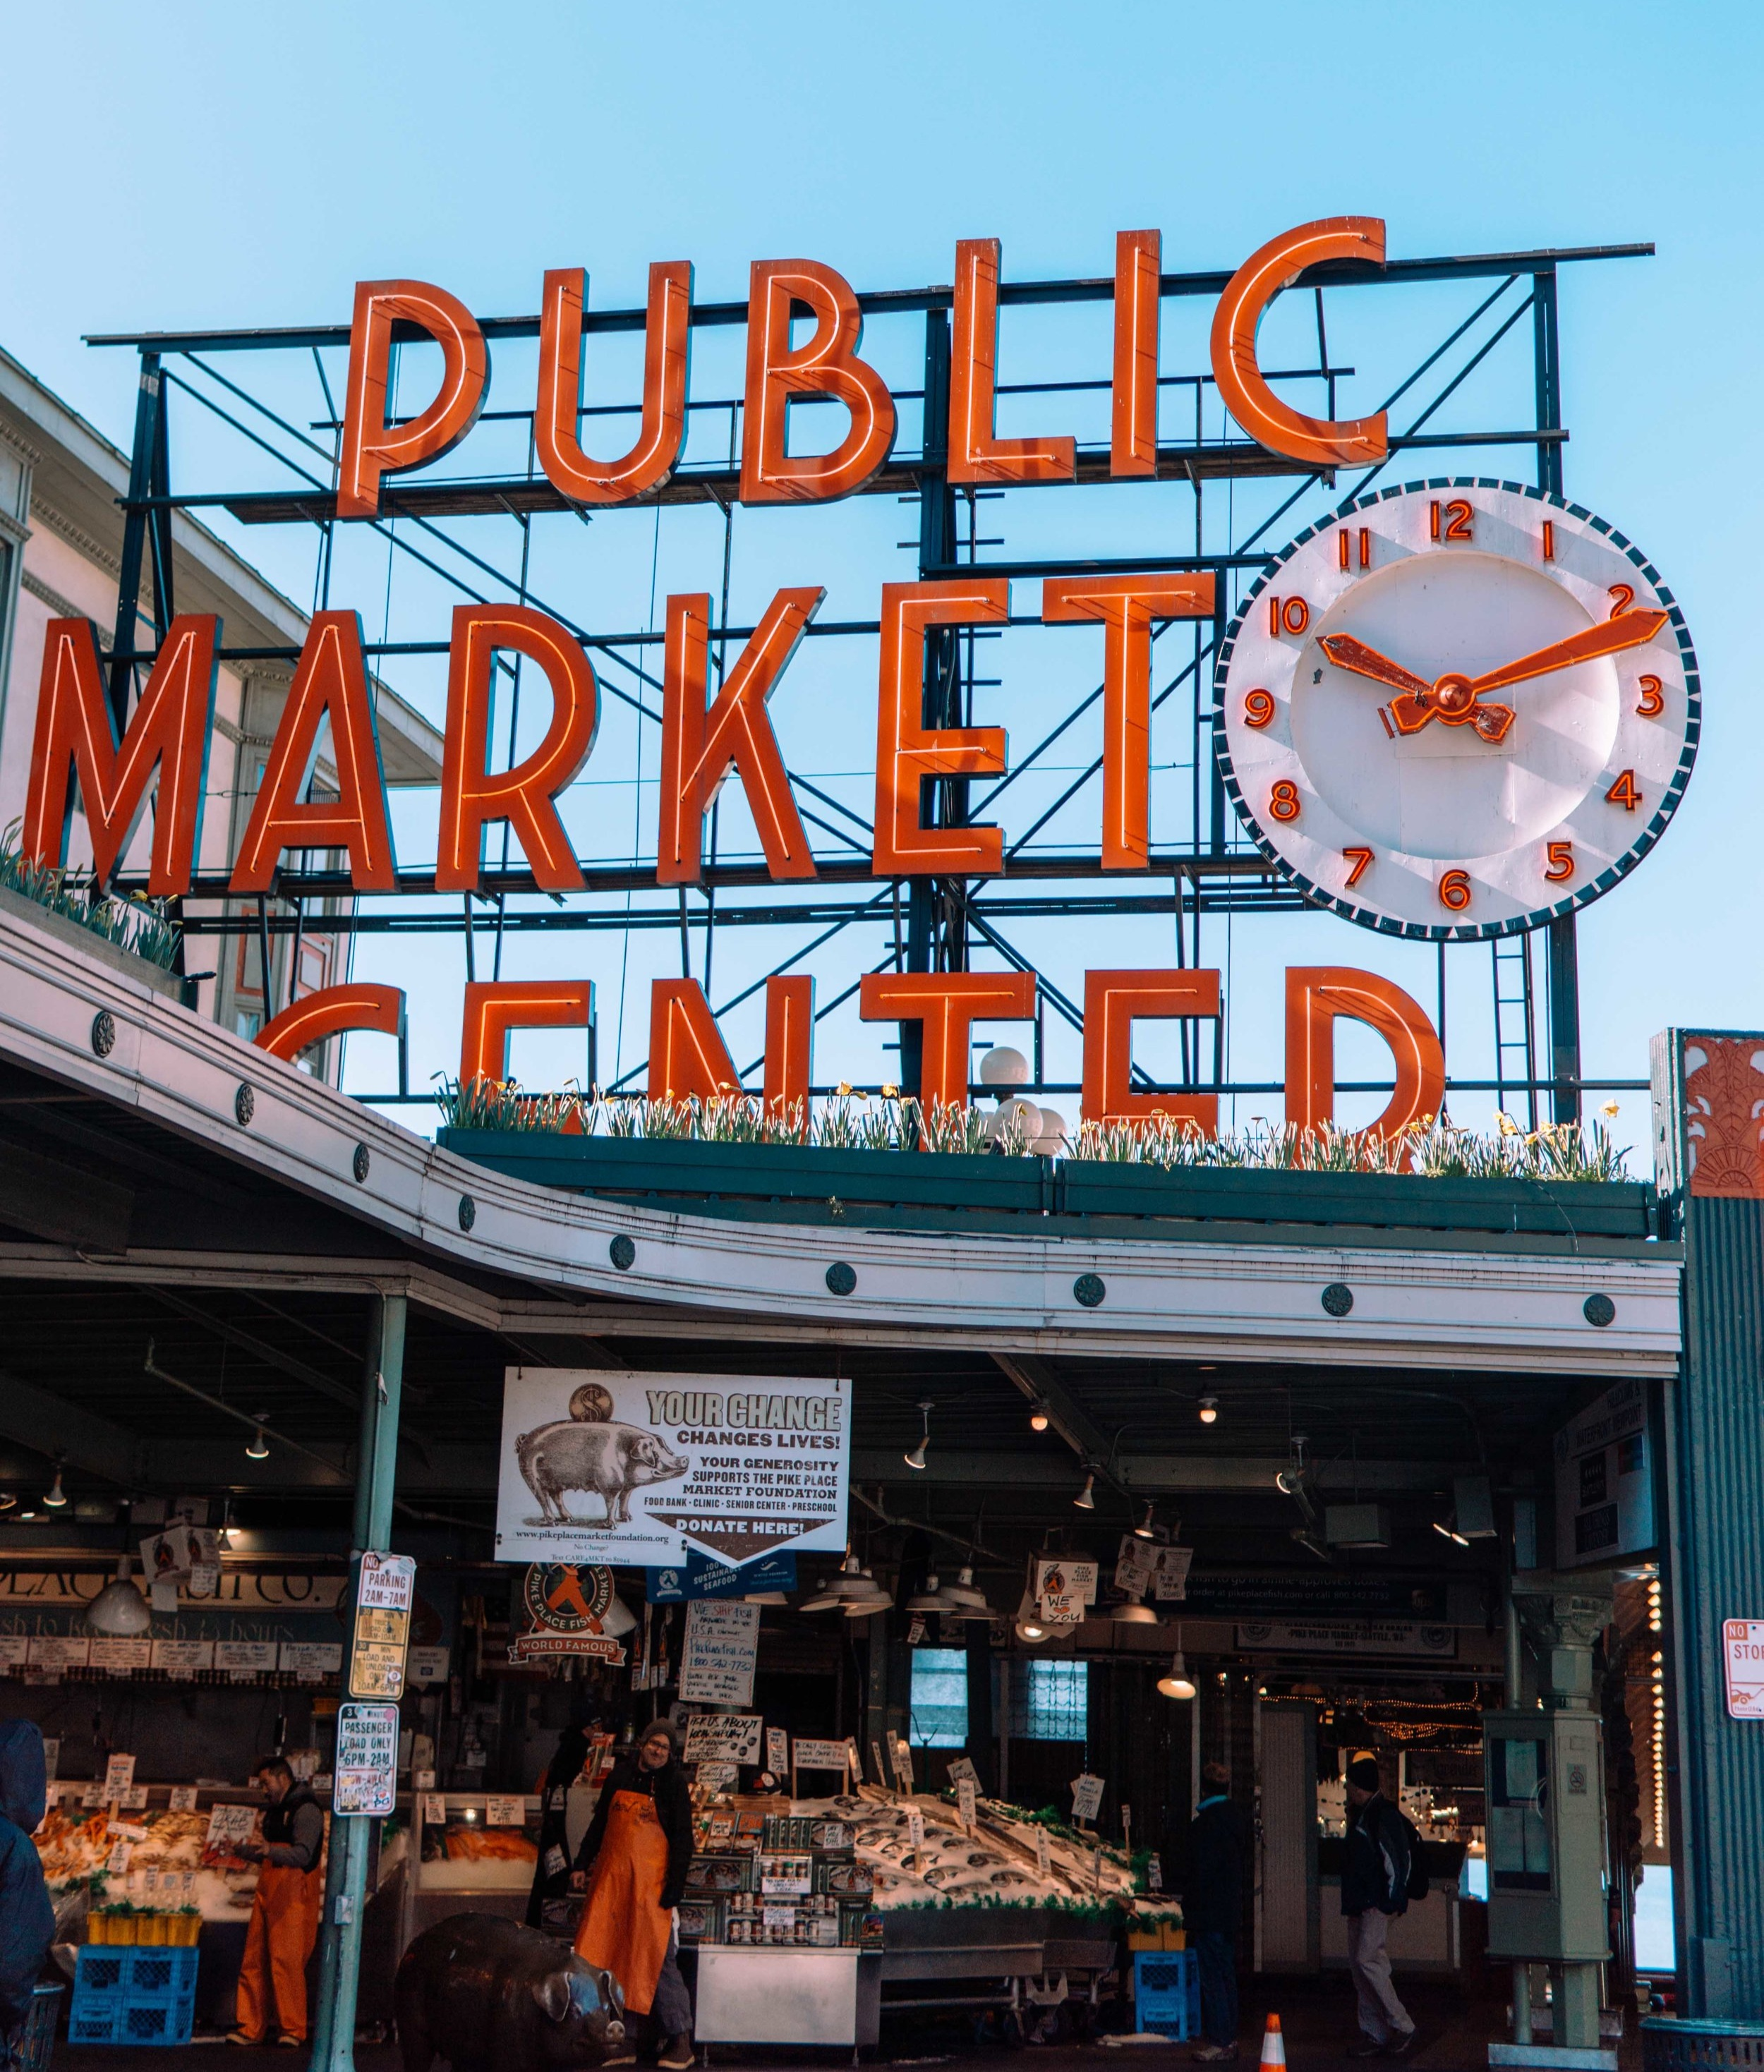 Traveling to Seattle? - I got you covered on the best places to see and the food spots you don't want to miss!